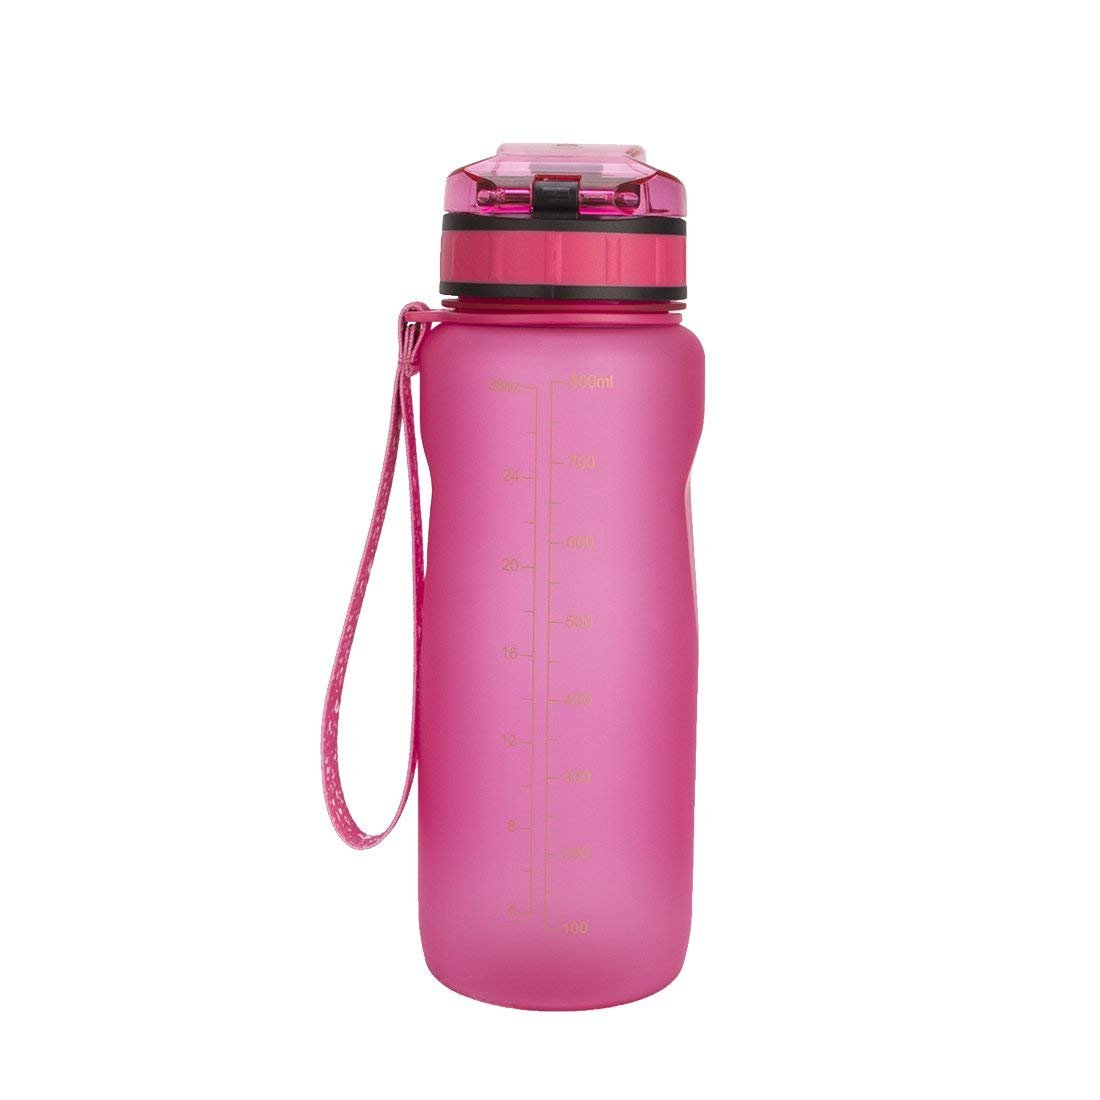 Chiffony Sports Water Bottle-27oz (800ML) Portable BPA-Free Plastic Lightweight Drinking Cup,Flip Top Lid,Eastman Tritan,Leak-Proof(Pink) by Chiffony (Image #1)